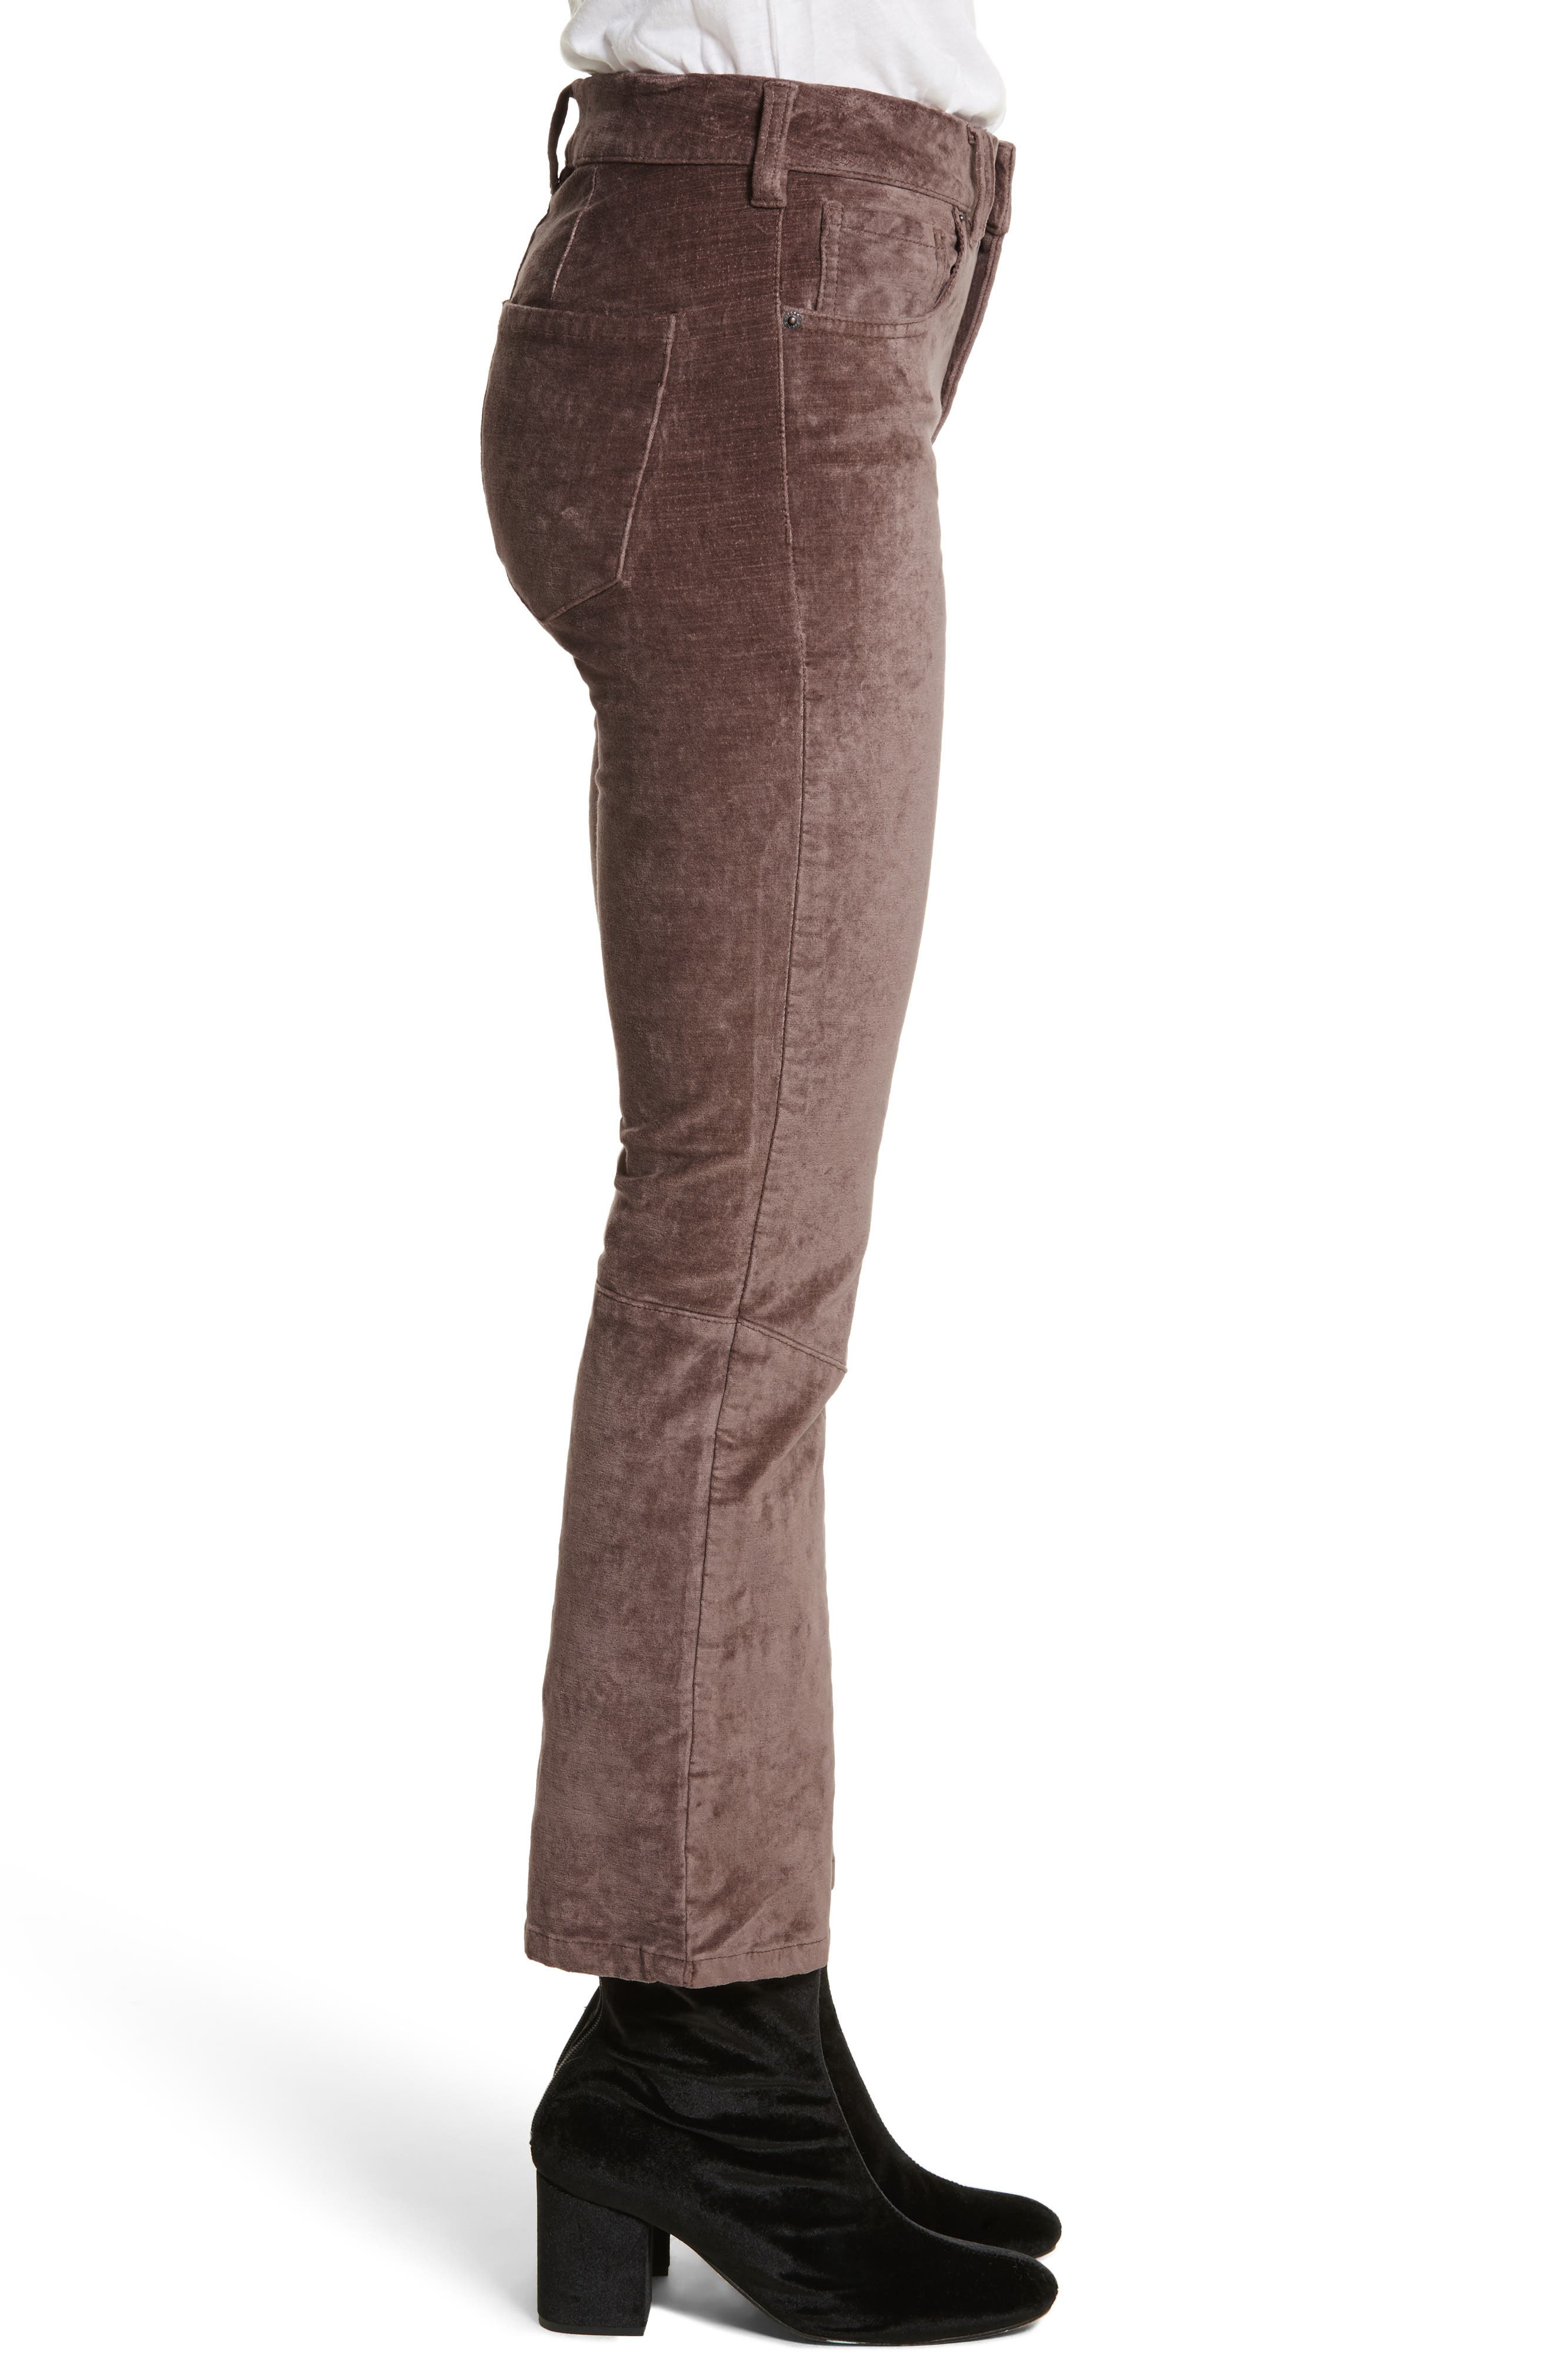 Velvet Crop Bootcut Pants,                             Alternate thumbnail 3, color,                             230